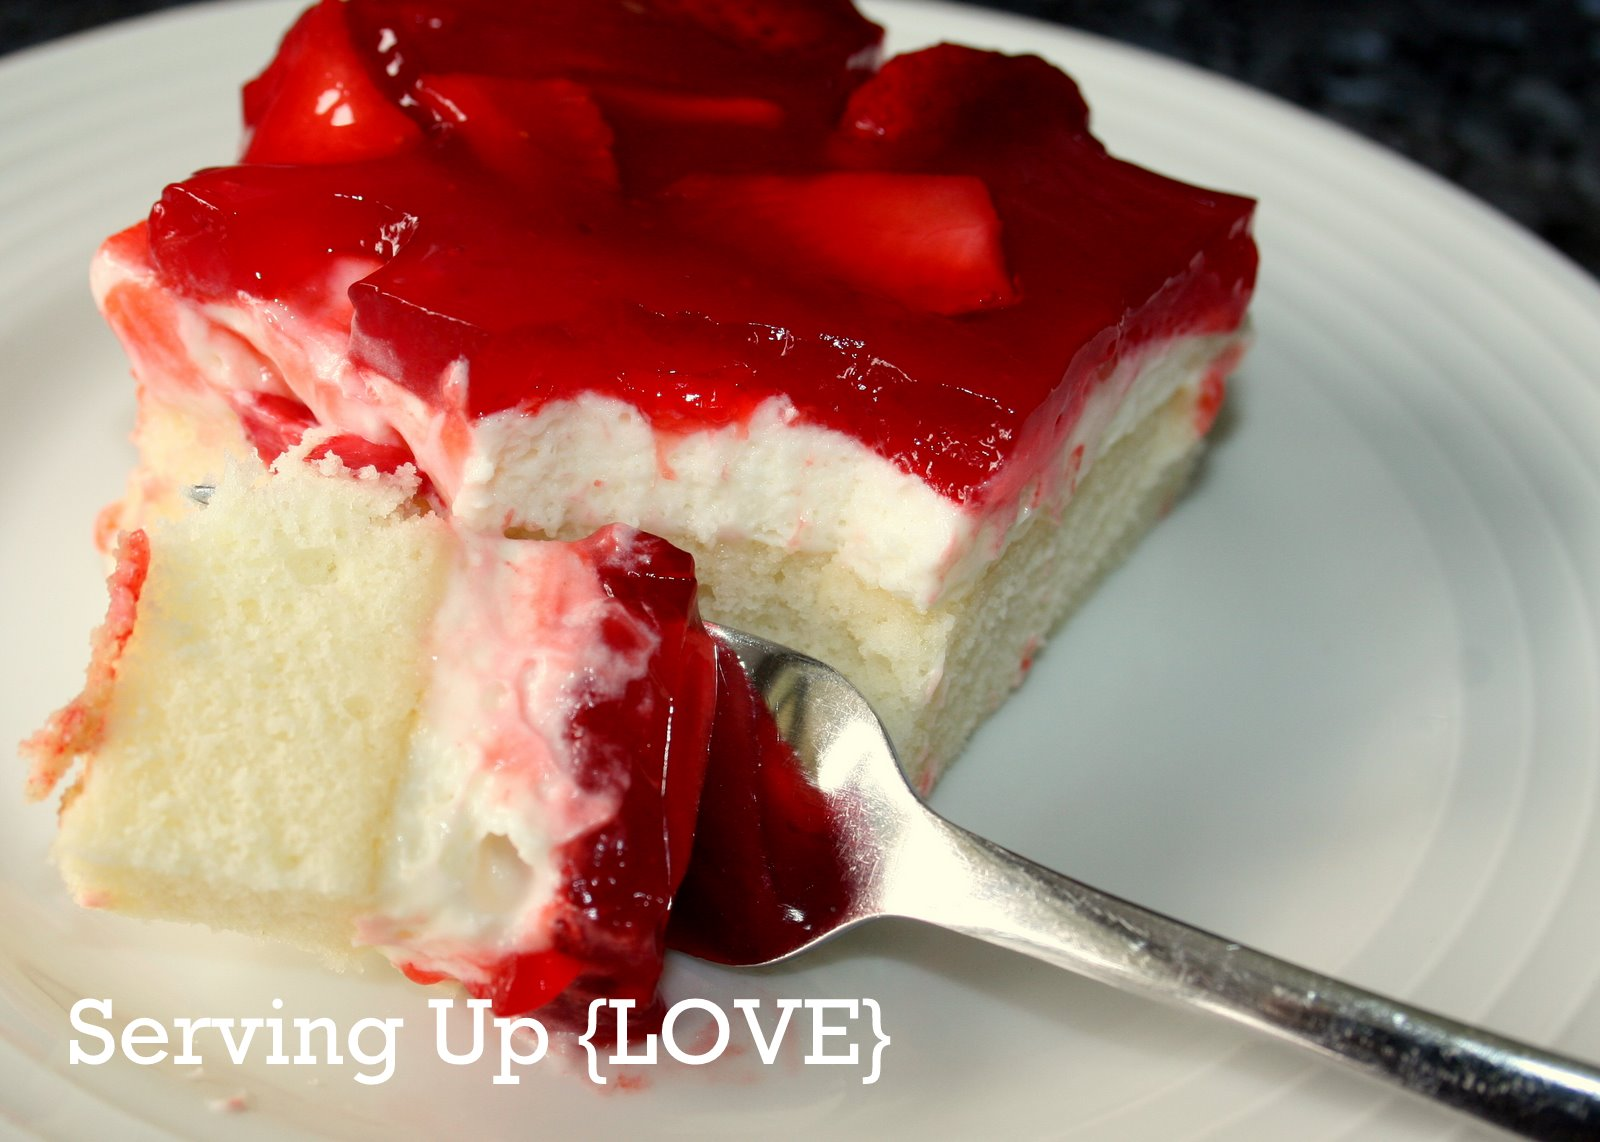 Katherine's Kitchen: Serving Up {Cake}: Strawberry Cream Cake